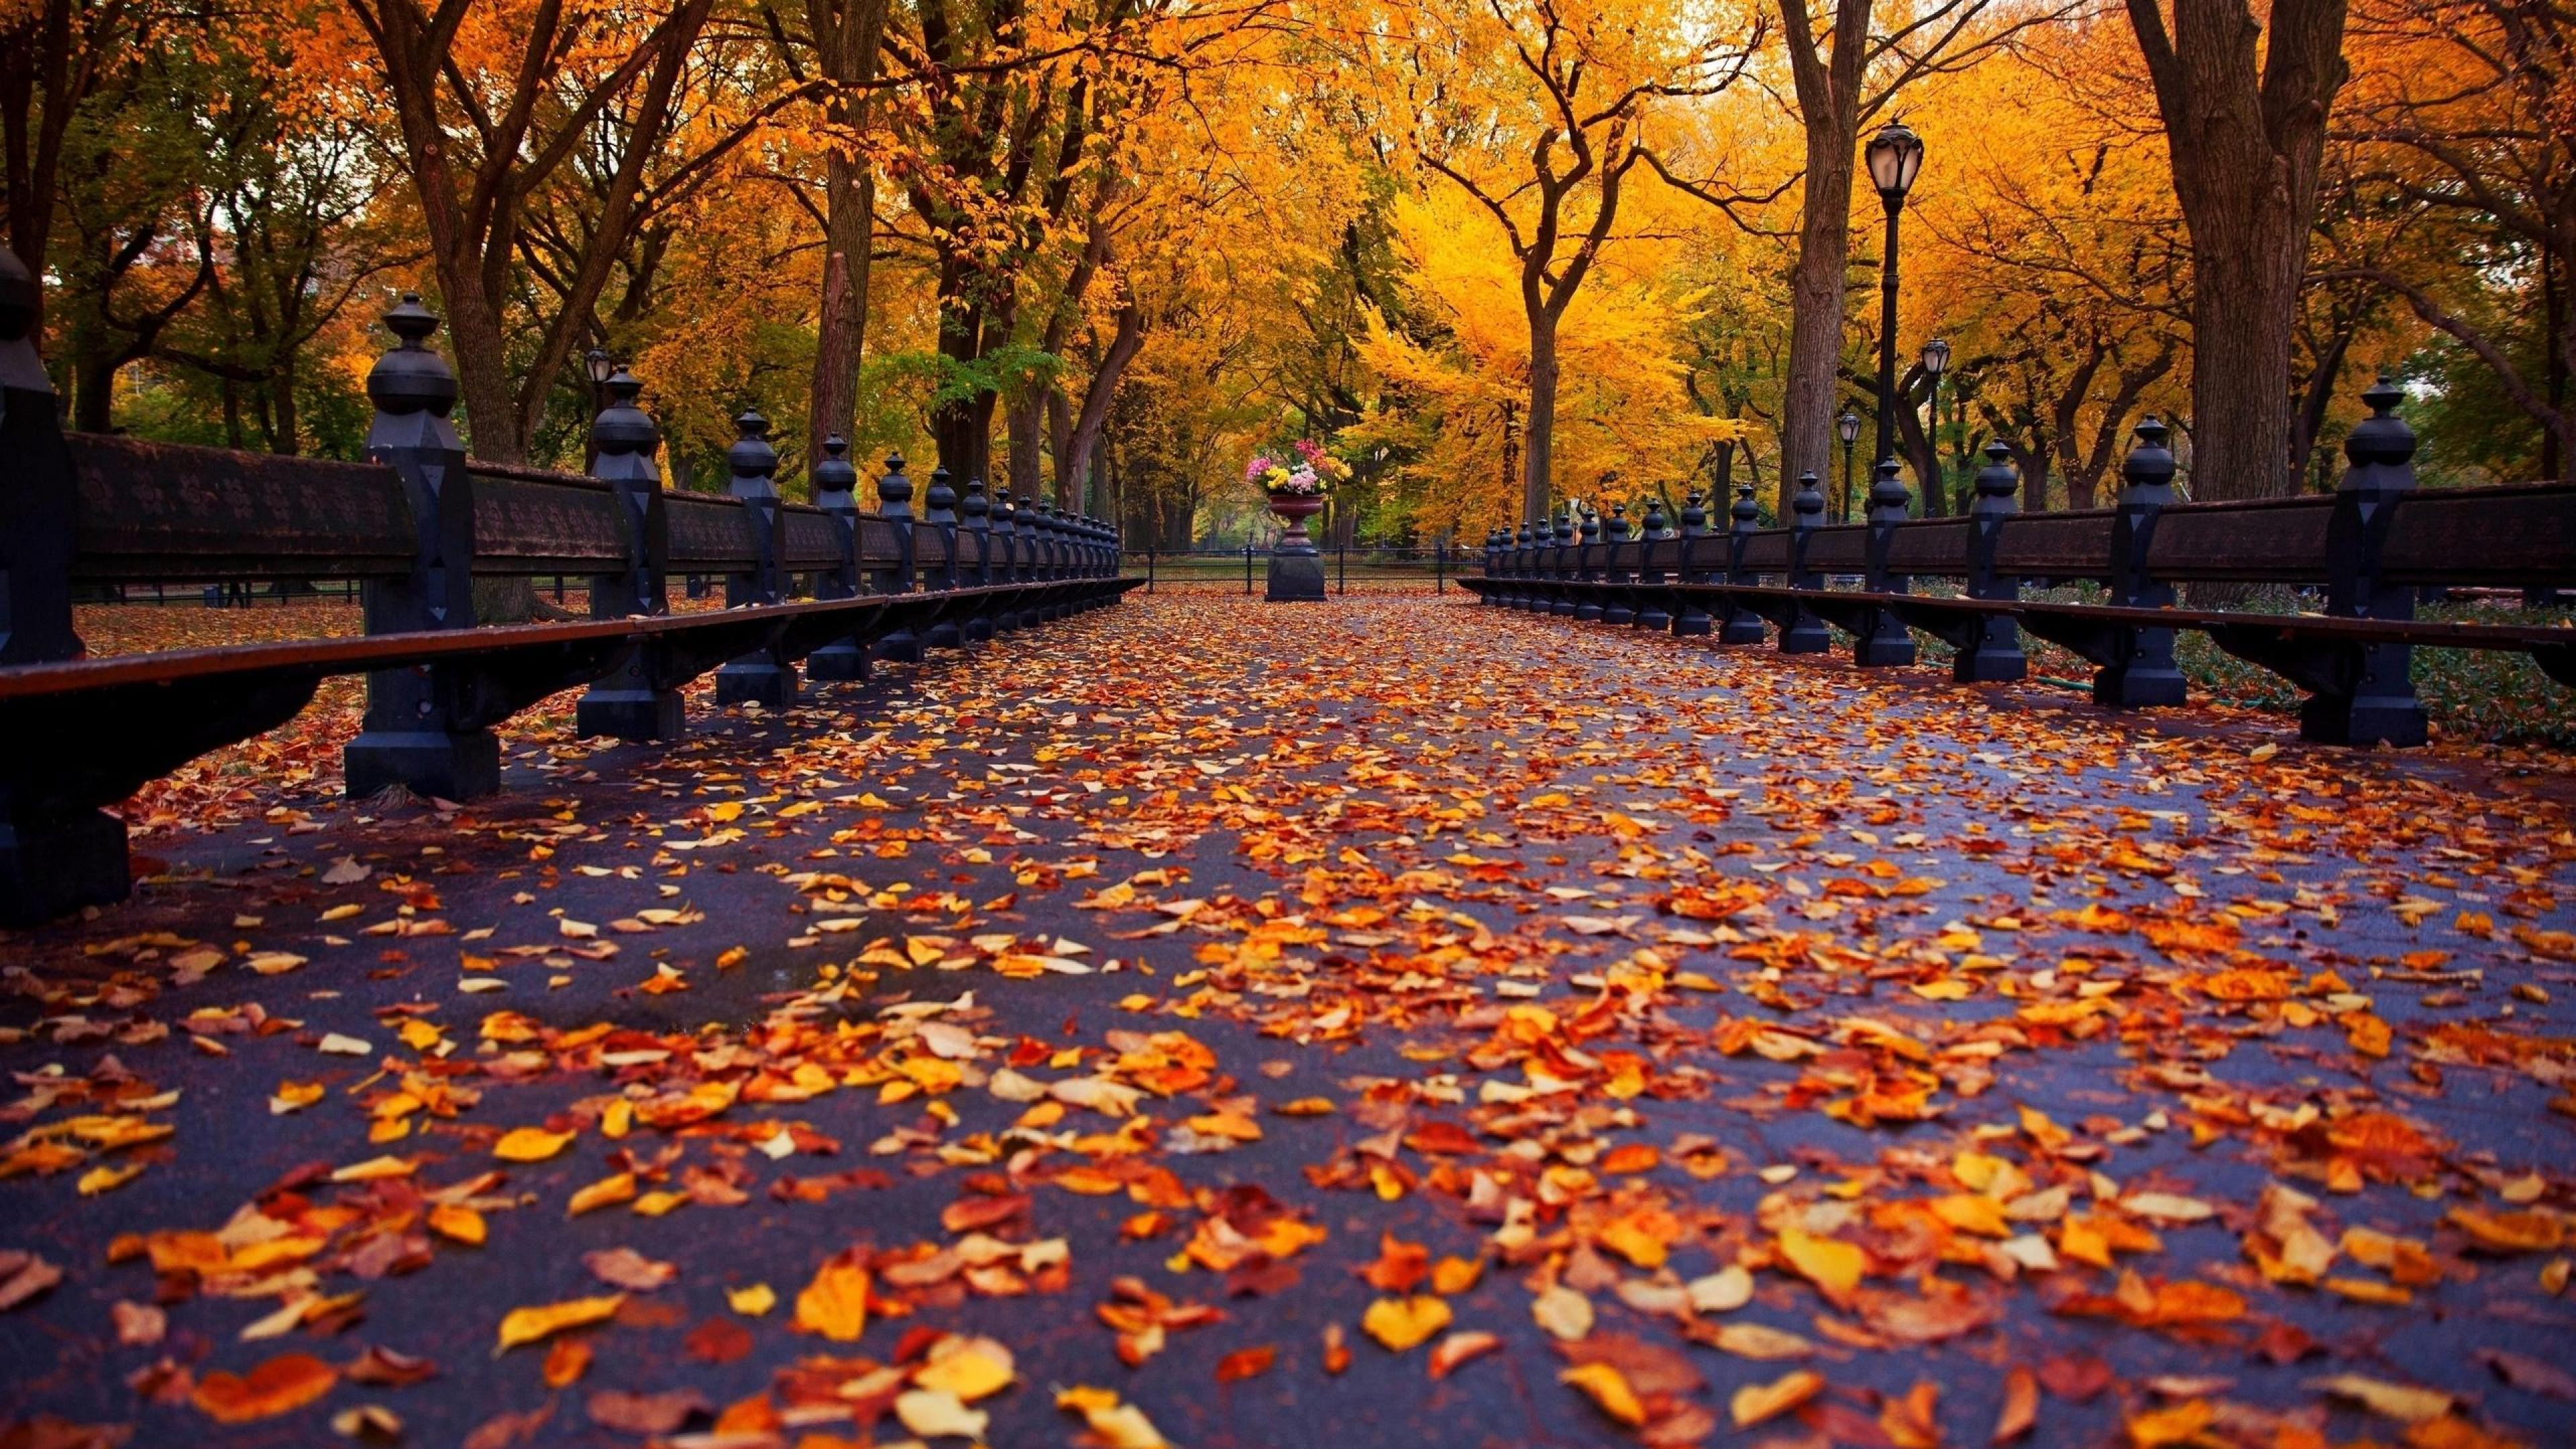 3840x2160 Fall Nature Leaf Autumn HD Wallpapers, Desktop Backgrounds, Mobile ...